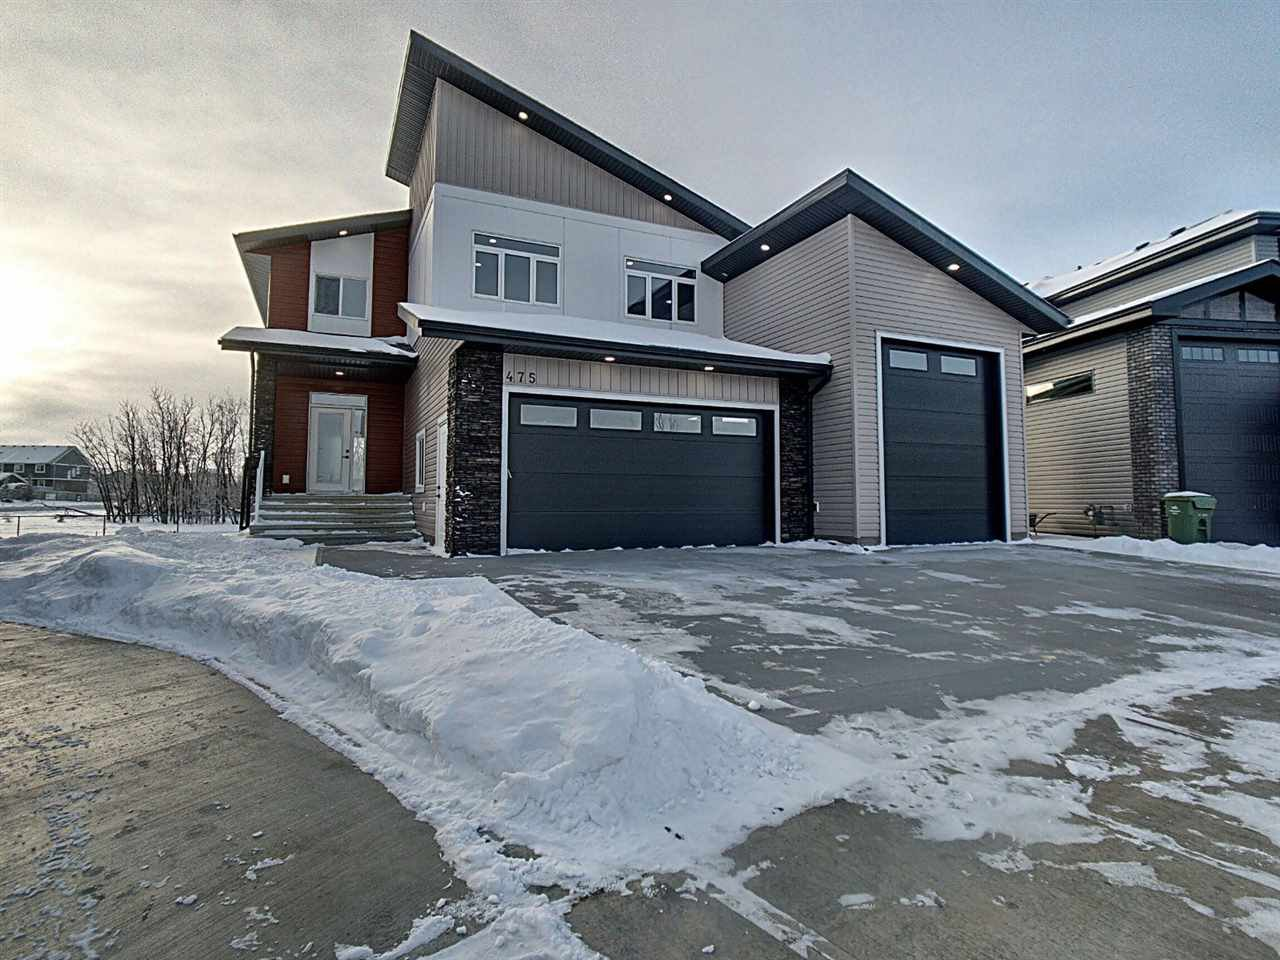 Main Photo: 475 MCALLISTER Place: Leduc House for sale : MLS®# E4221632